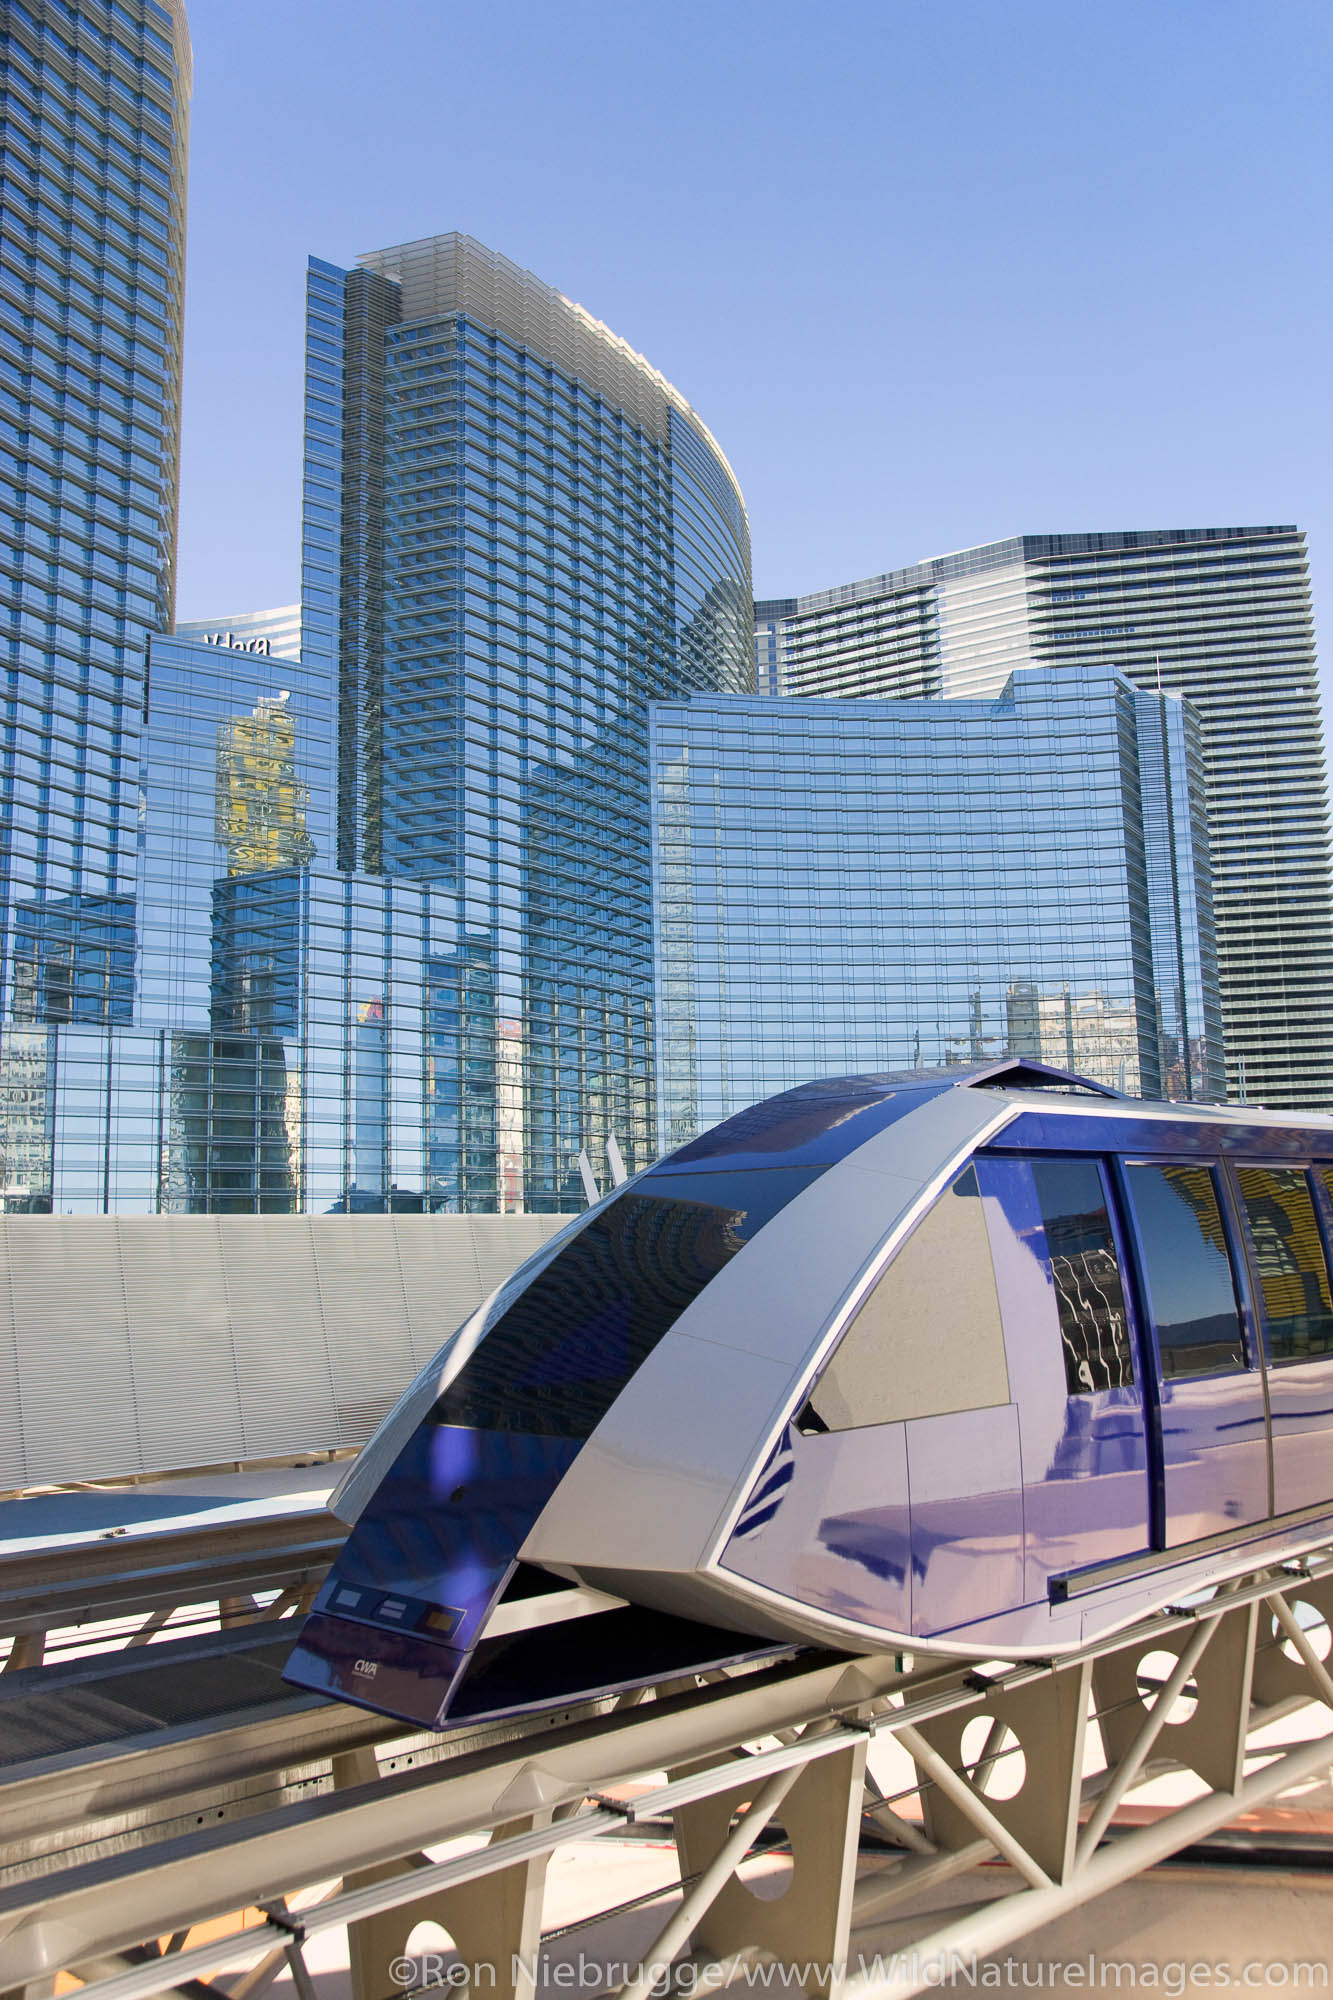 Tram with the Aria in the background, City Center, Las Vegas, Nevada.